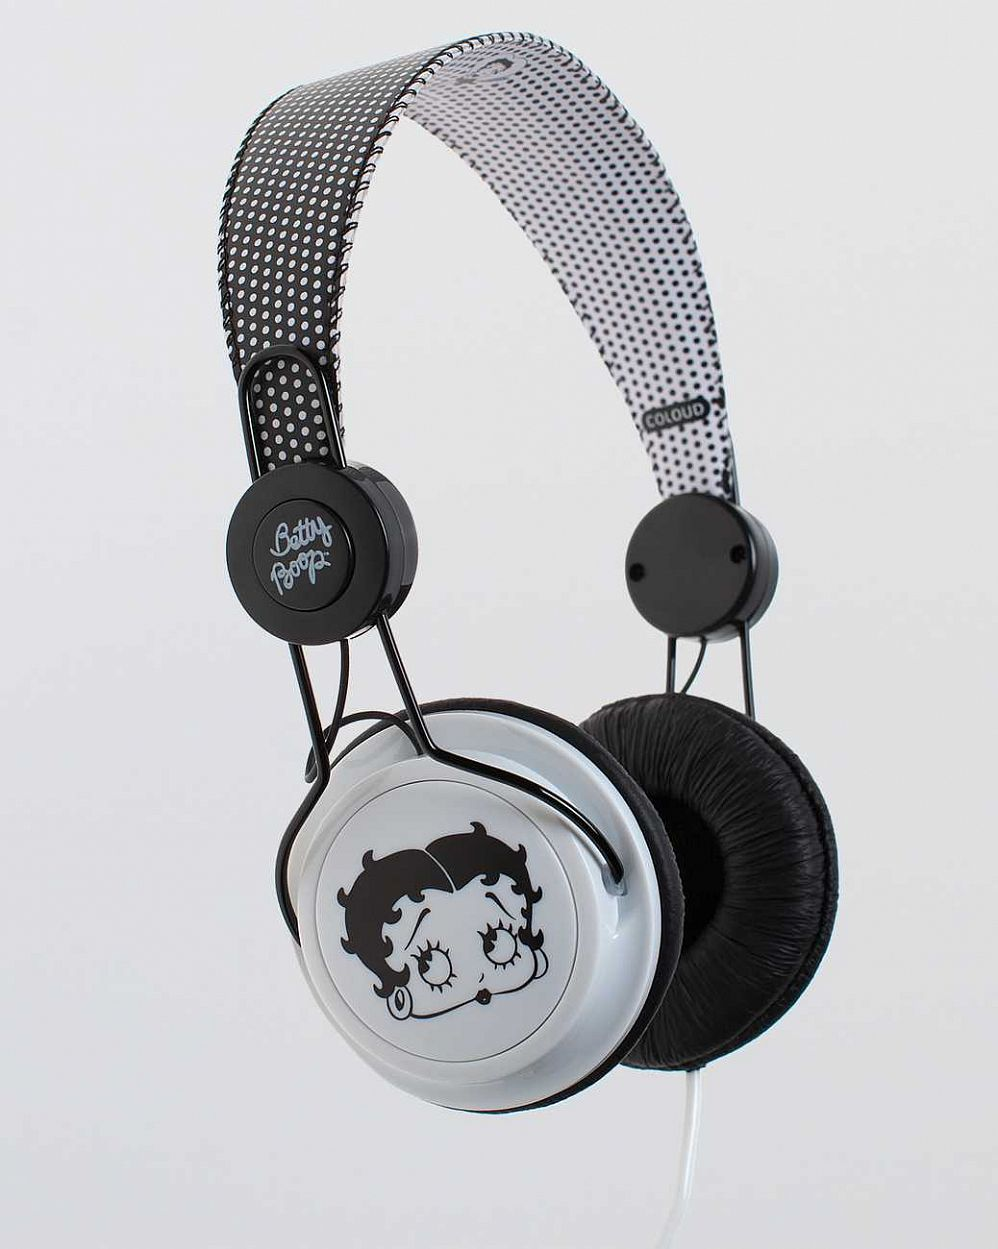 Наушники Coloud Betty Boop Black White отзывы